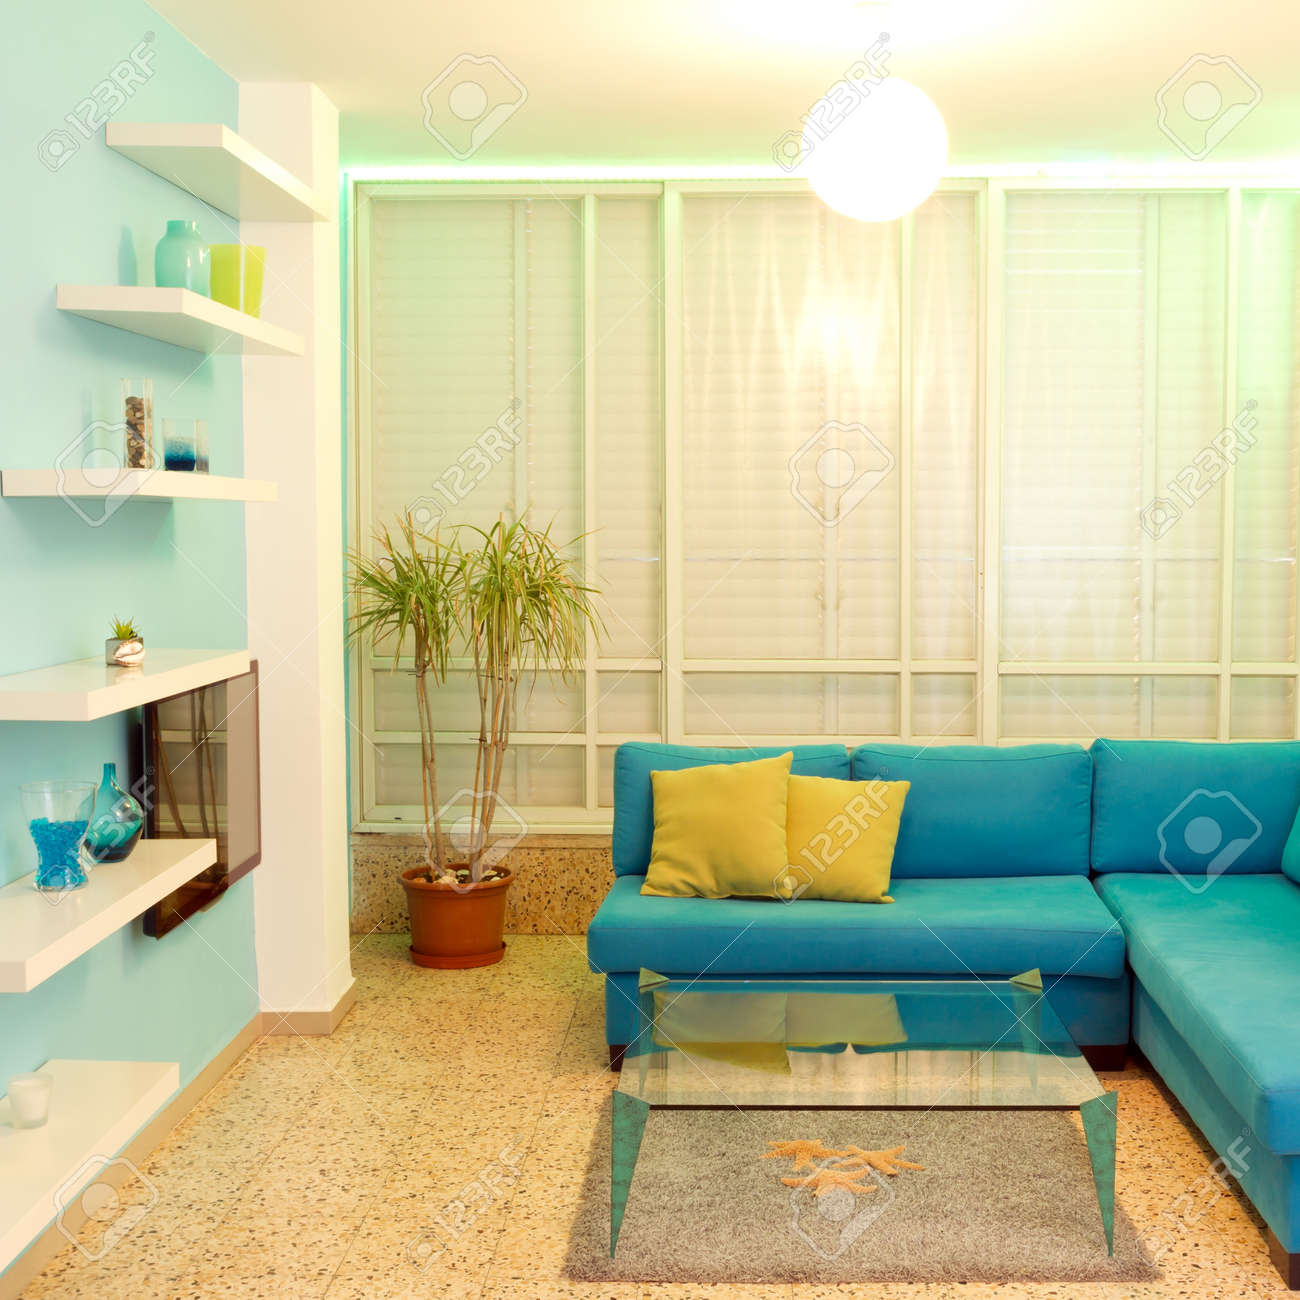 Interior design in a new house  Different colors of lighting Stock Photo - 15217324